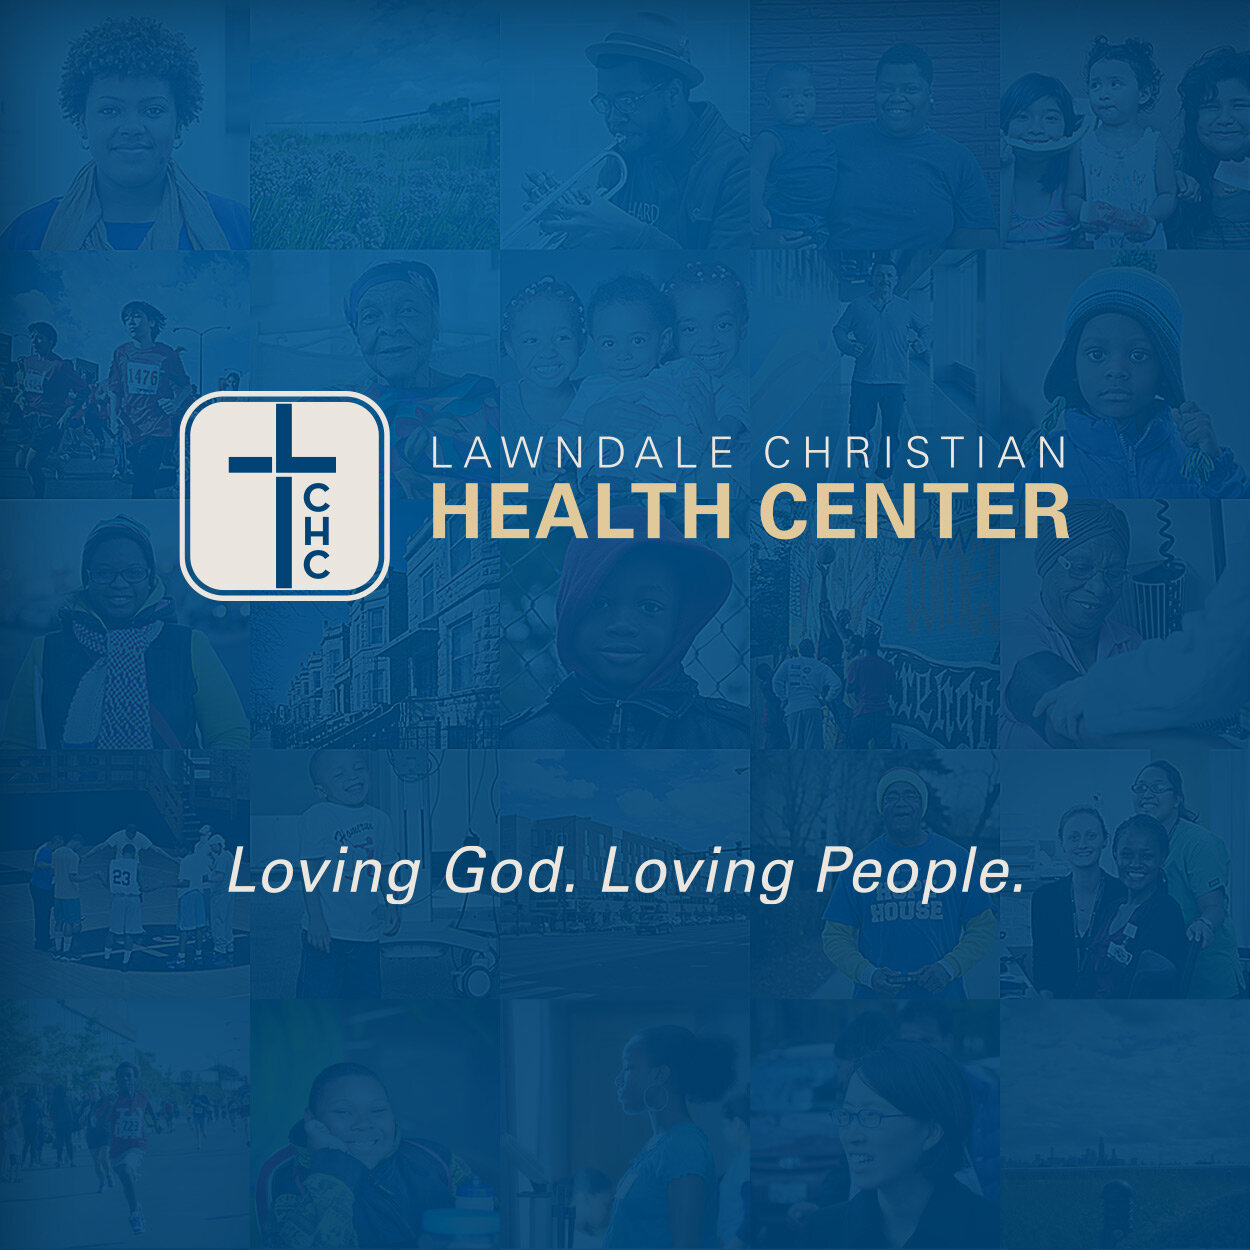 Lawndale Christian Health Center – Quality, Affordable Healthcare